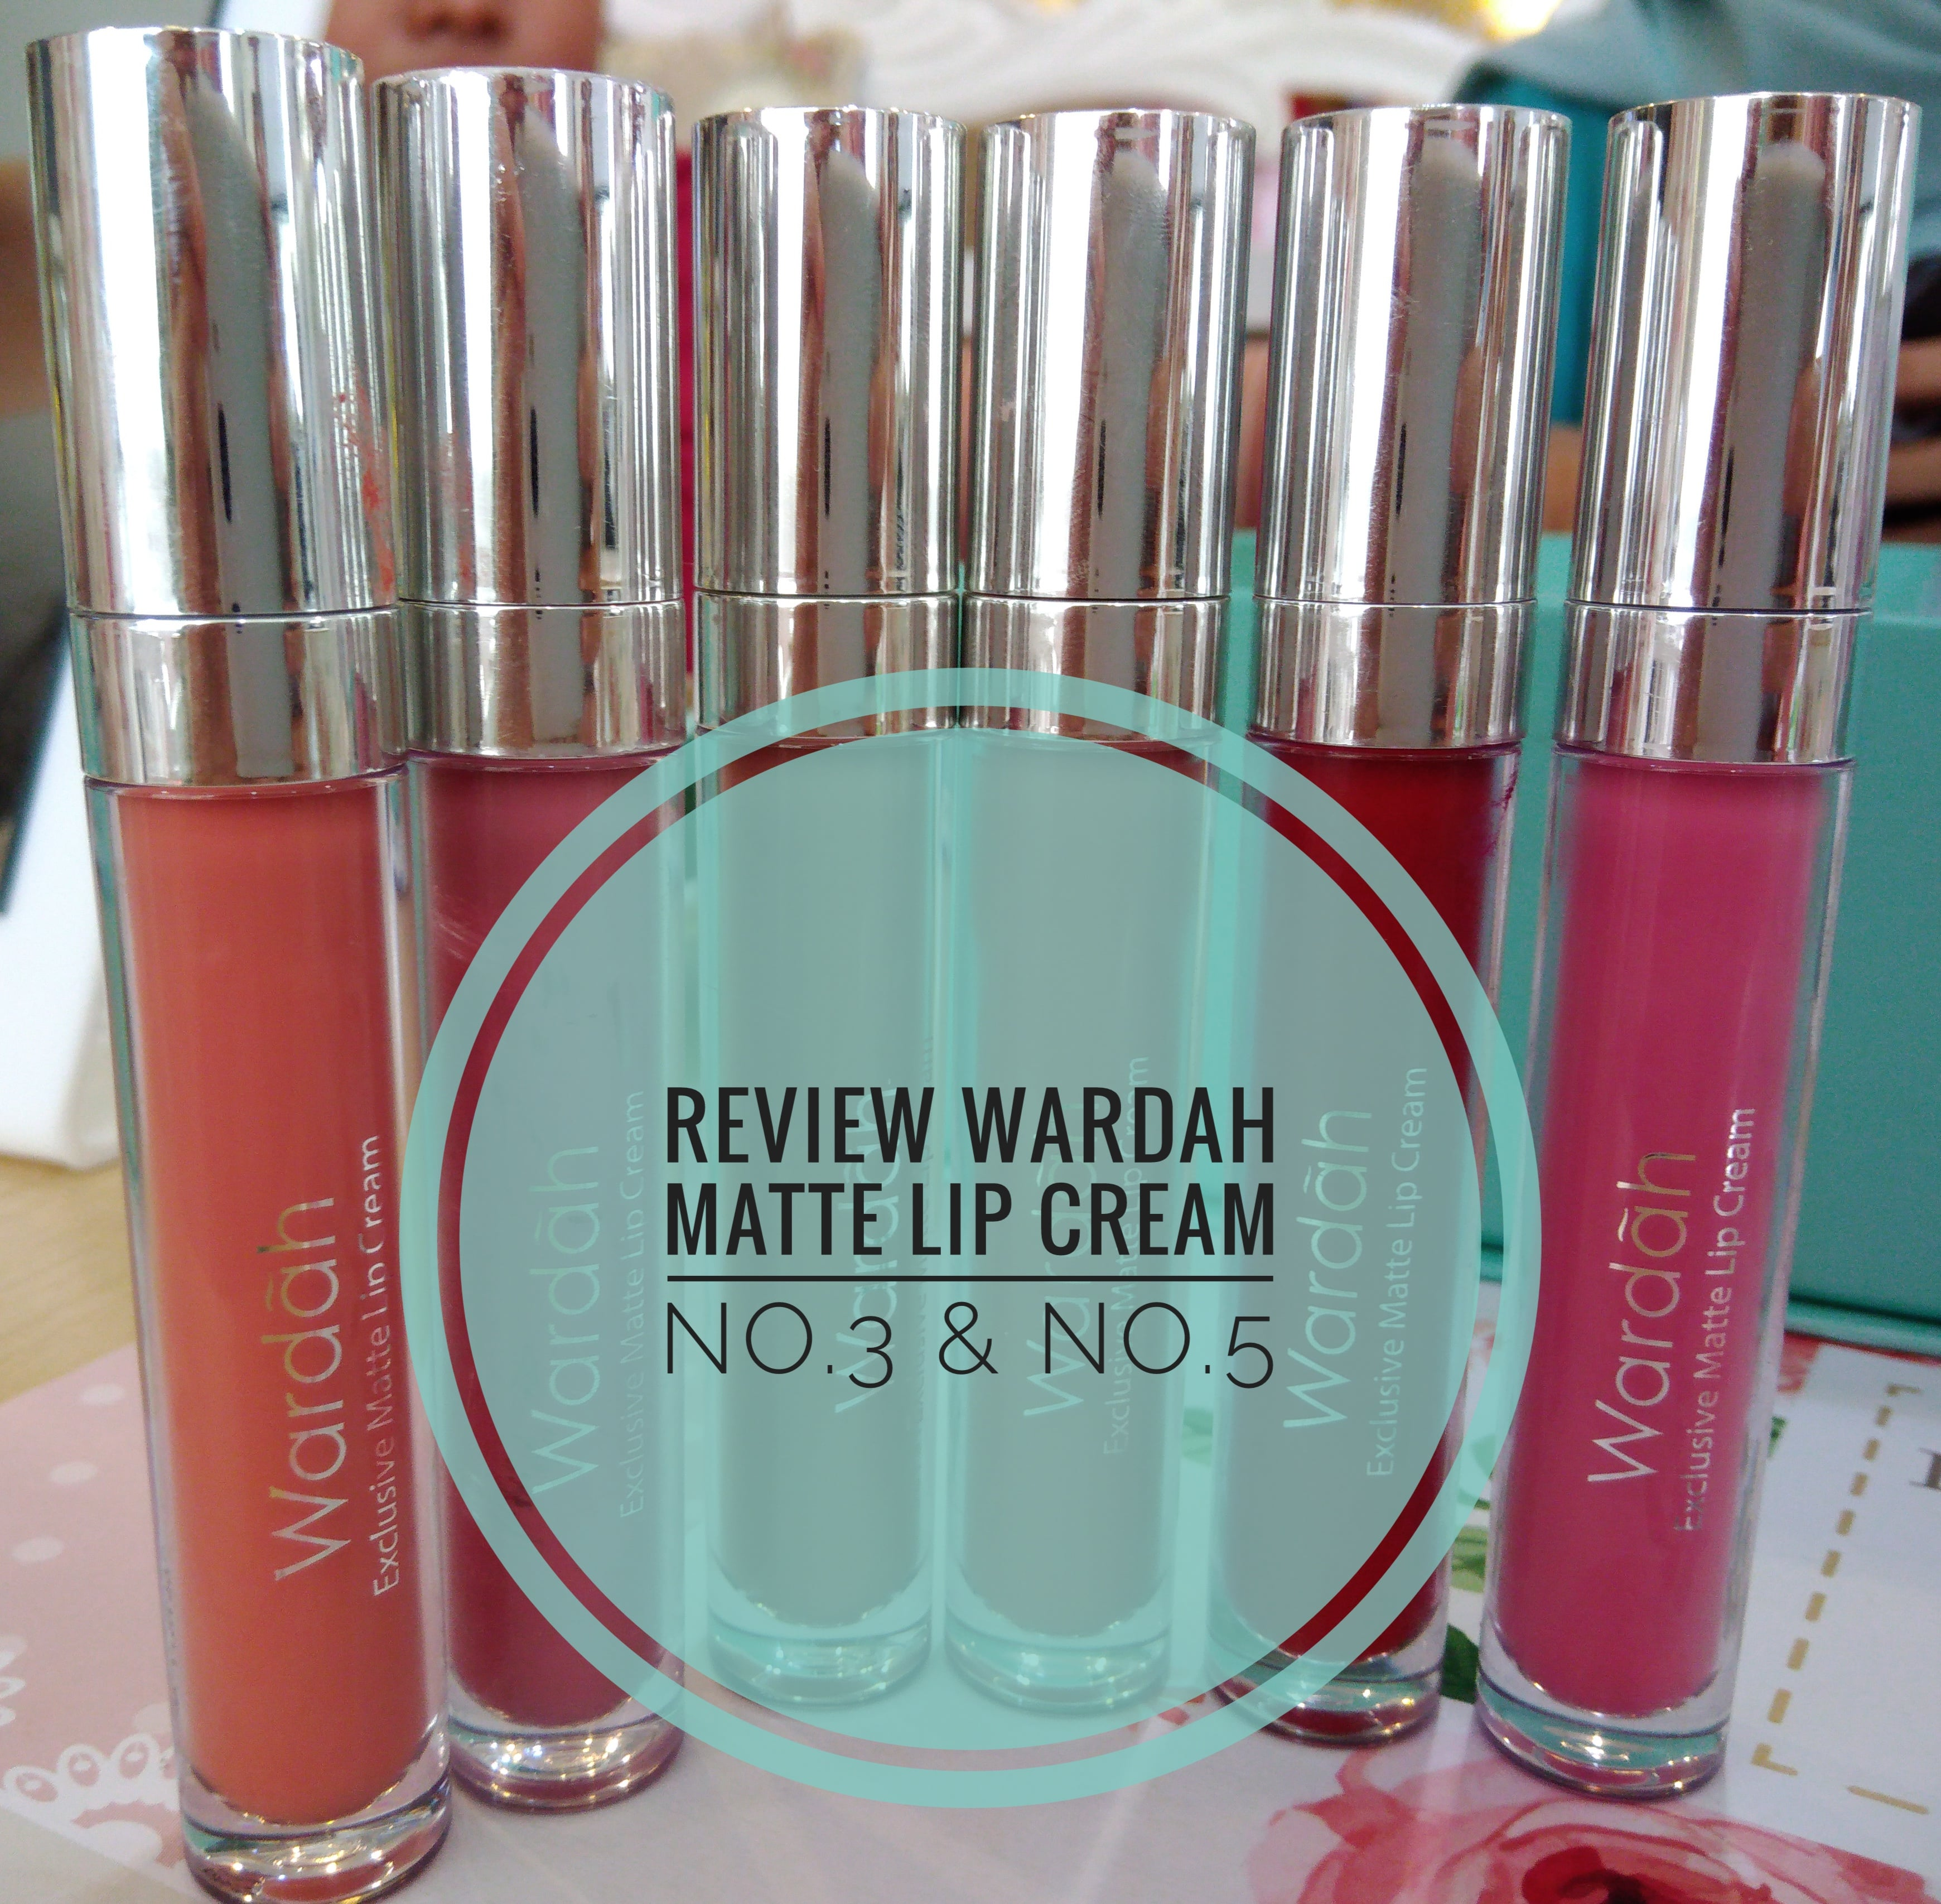 Review Wardah Exclusive Matte Lip Cream – No.5 & No.3